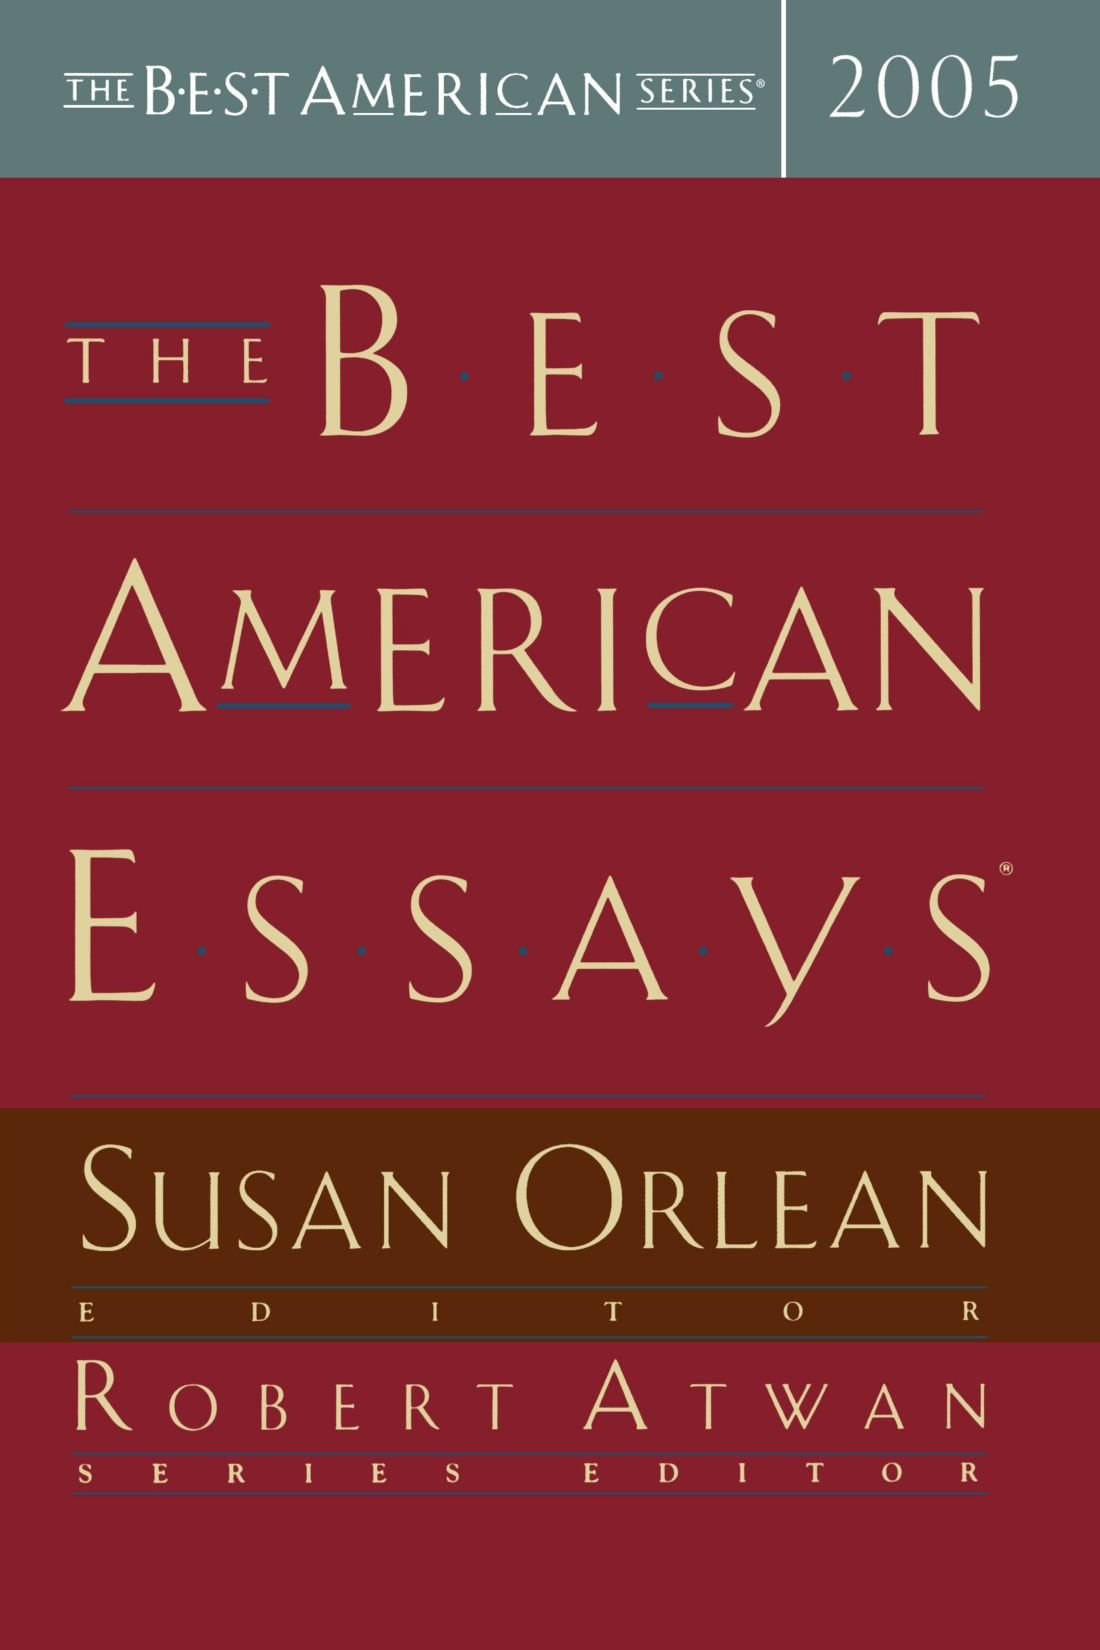 010 Essay Example Best American Essays Striking 2017 Table Of Contents The Century Pdf Full